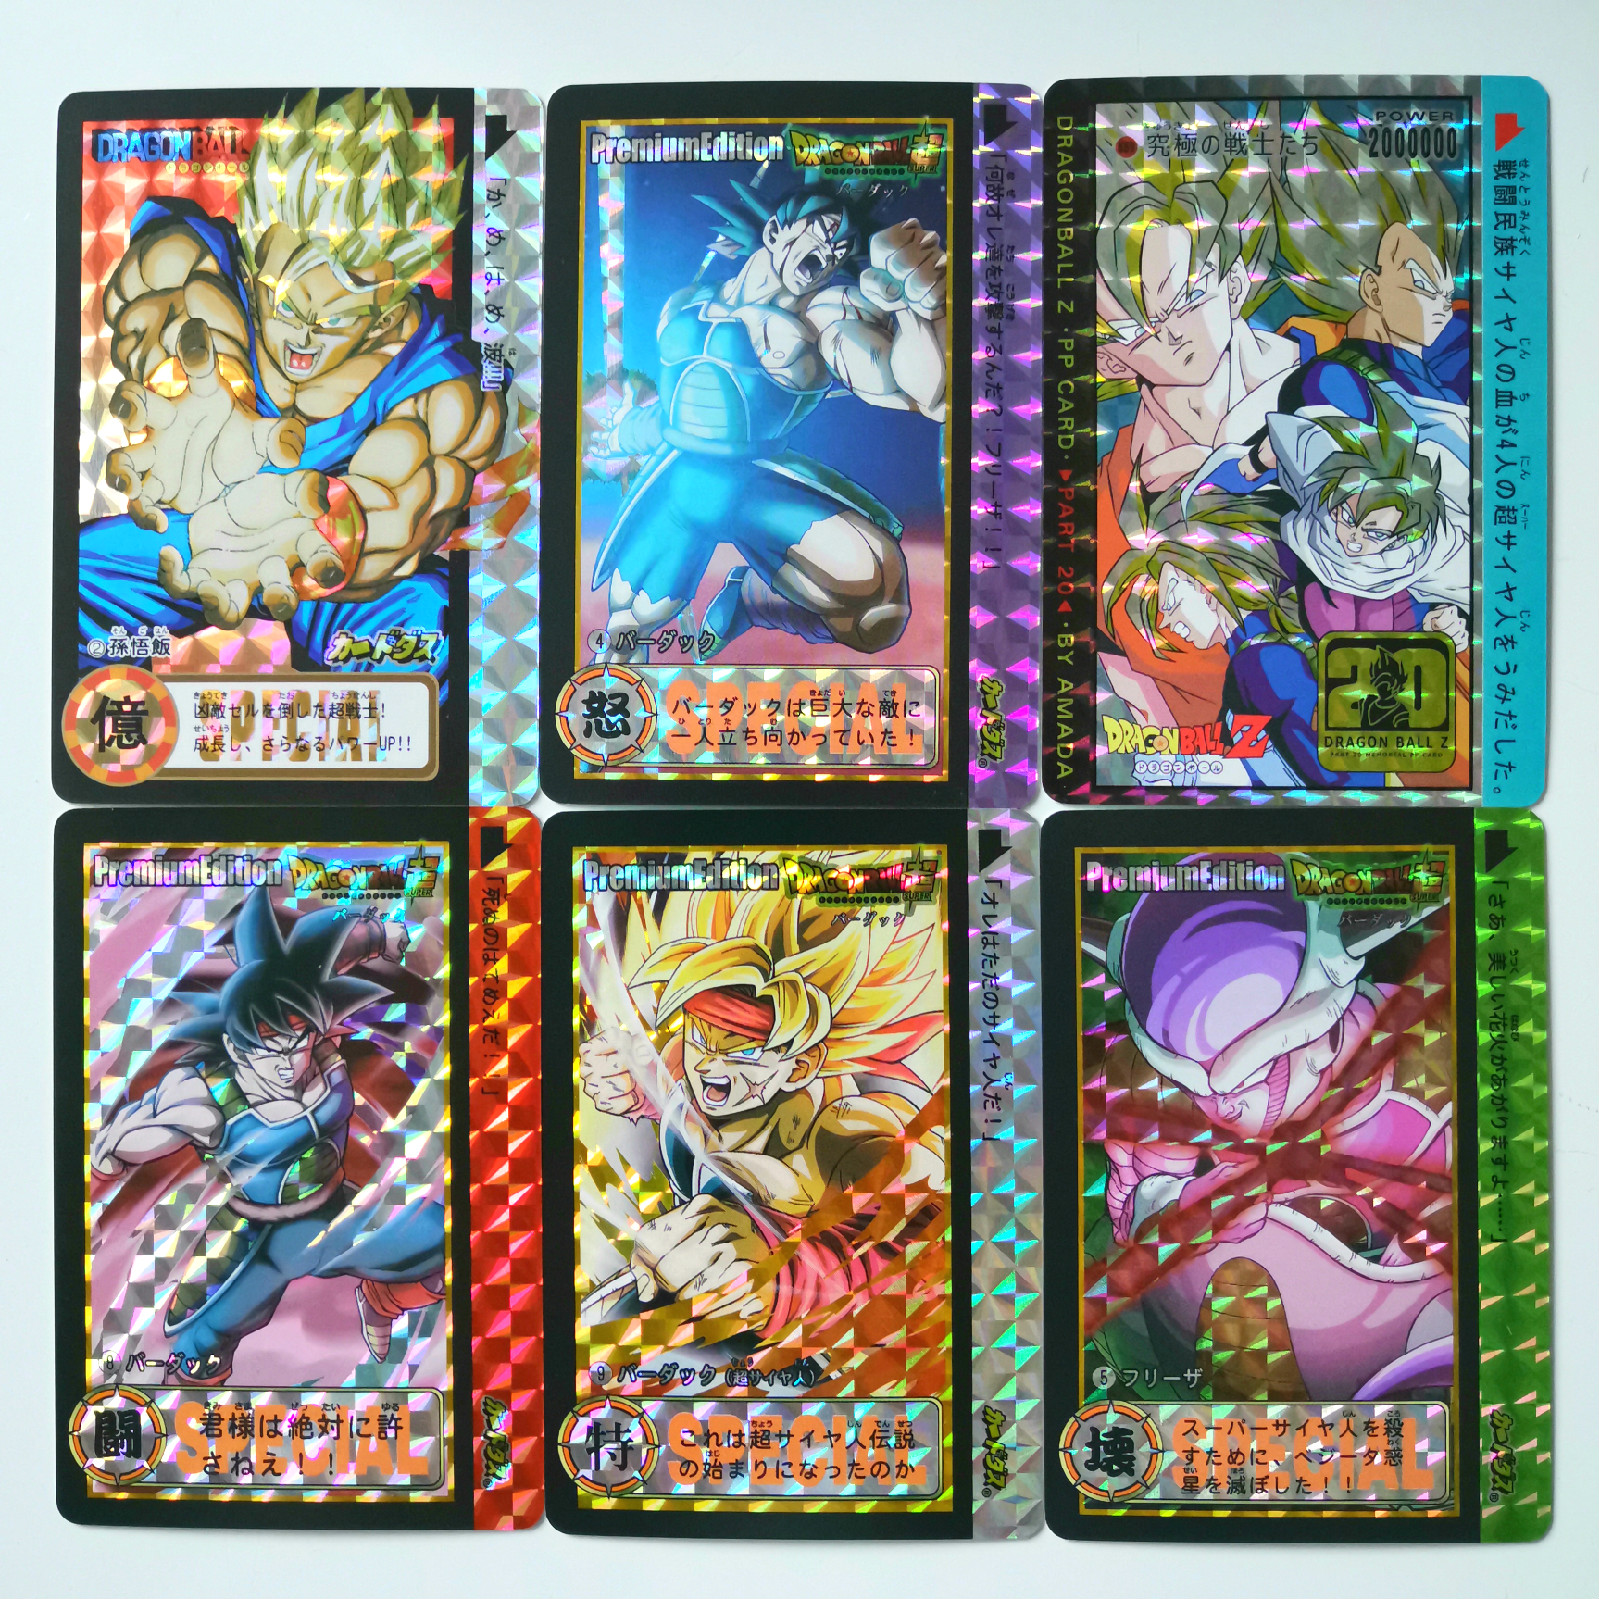 50pcs/set Super Dragon Ball Z Heroes Storm Clouds <font><b>11</b></font> Battle Card Ultra Instinct Goku Vegeta Game Collection Cards image